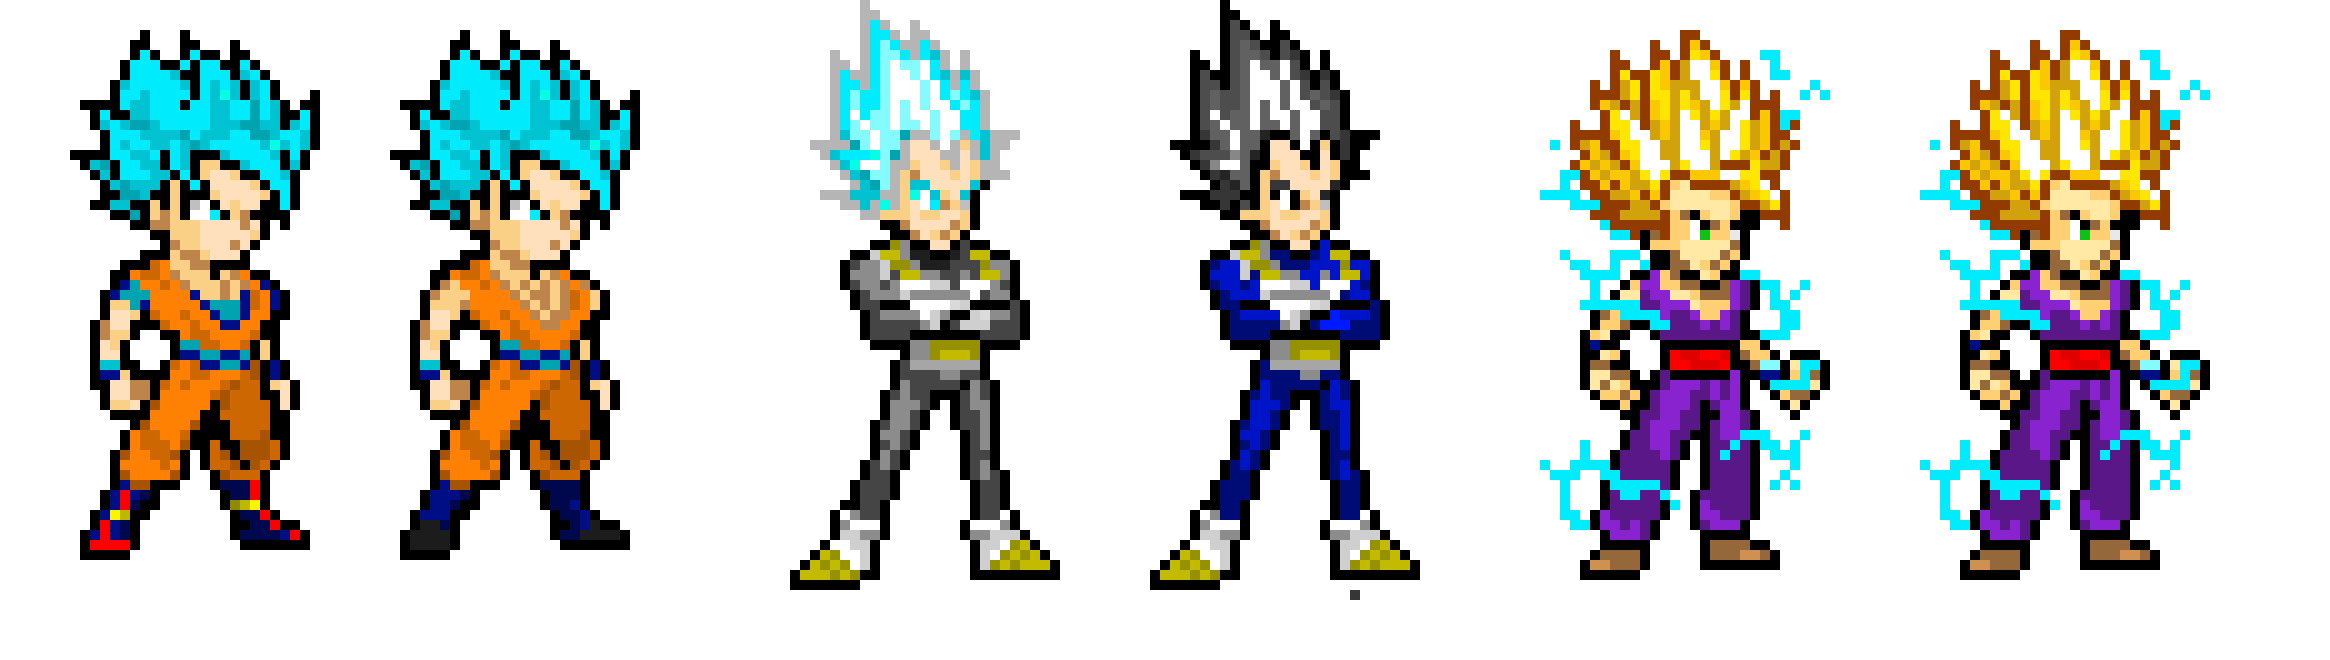 Fabuleux Dragon Ball Z Sprites (Re-Edited!) | Pixel Art Maker SW78